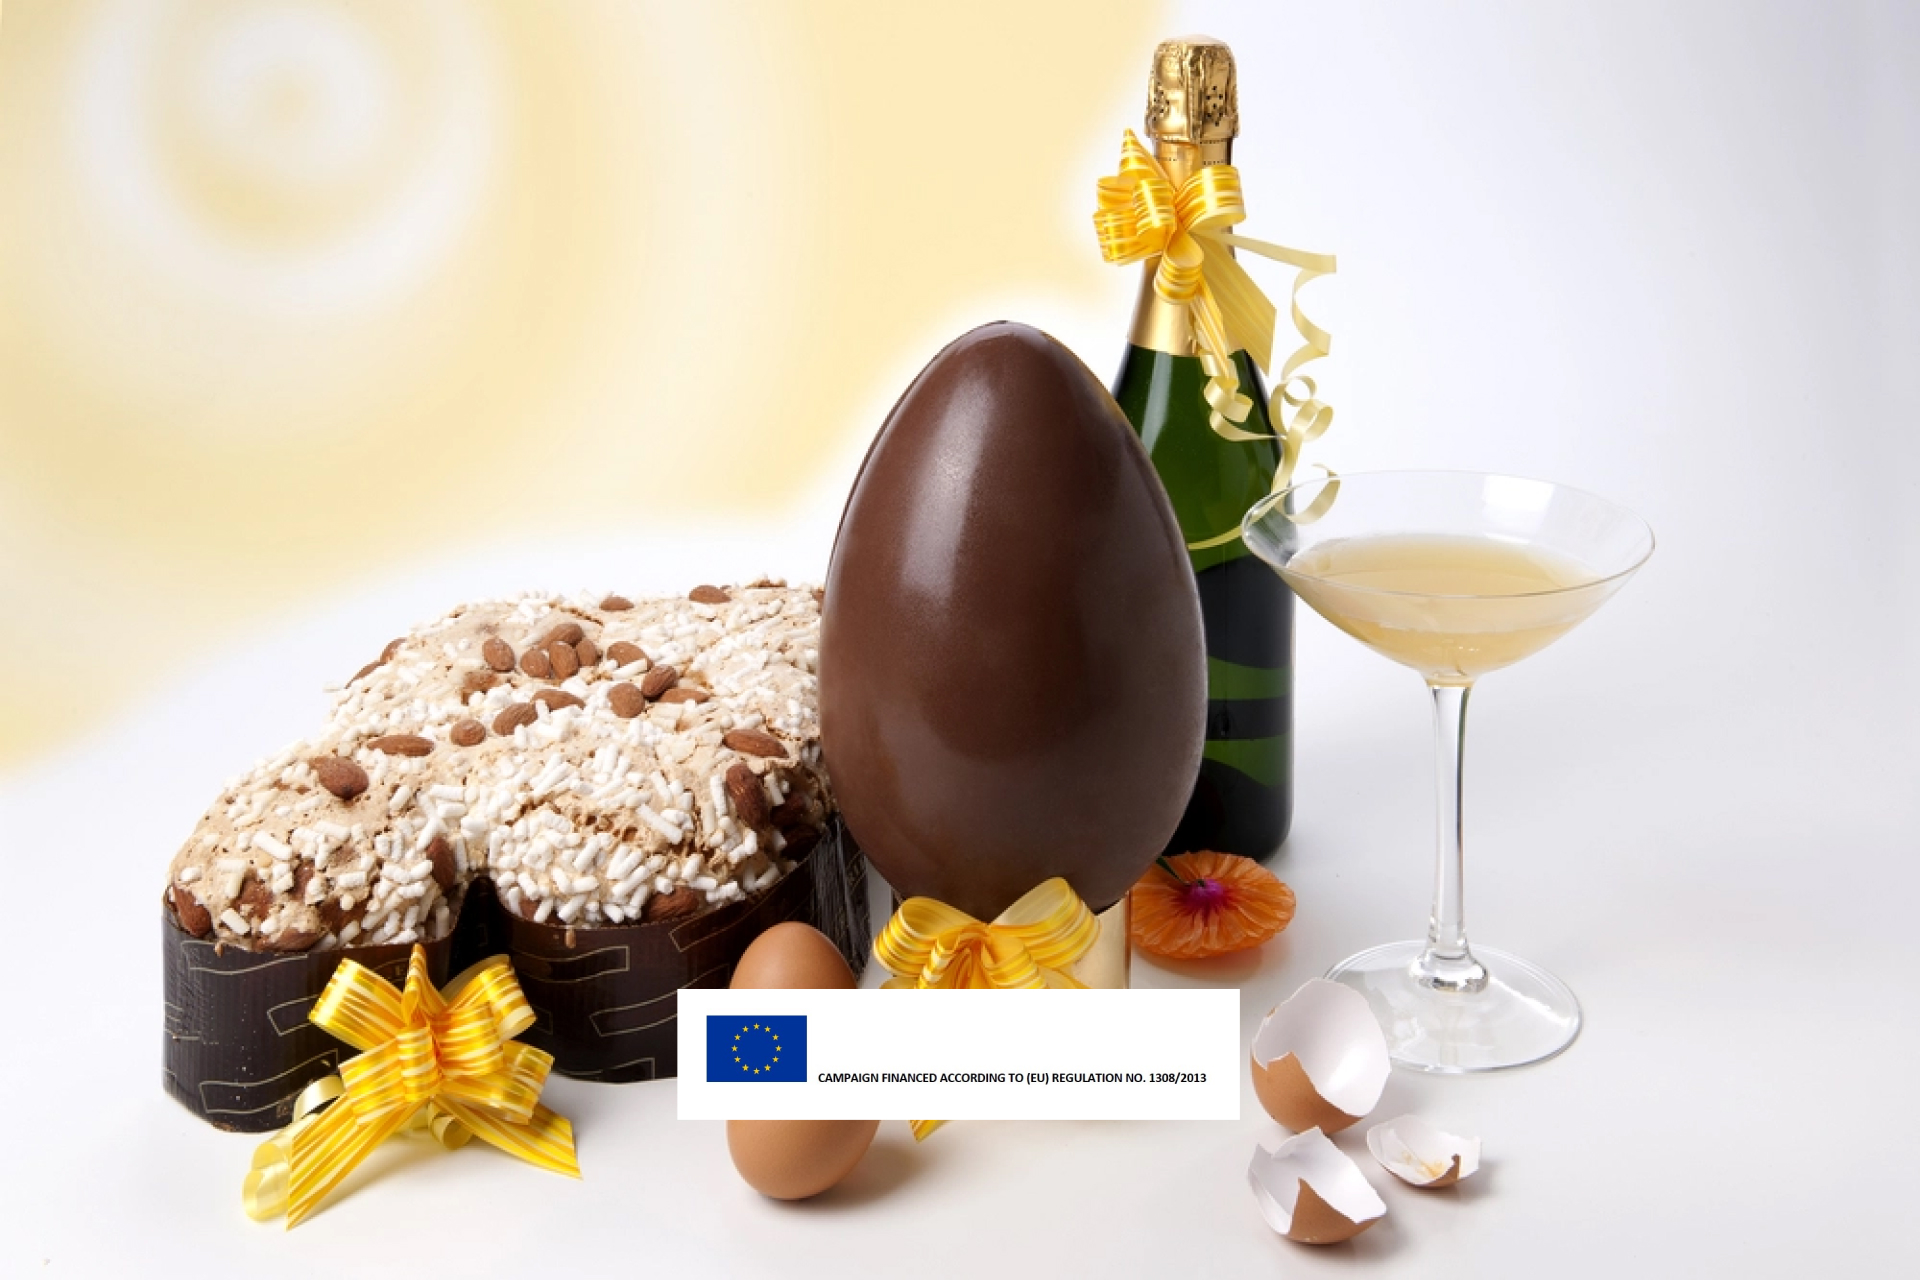 Italian Easter Egg Tradition & Wine Pairings